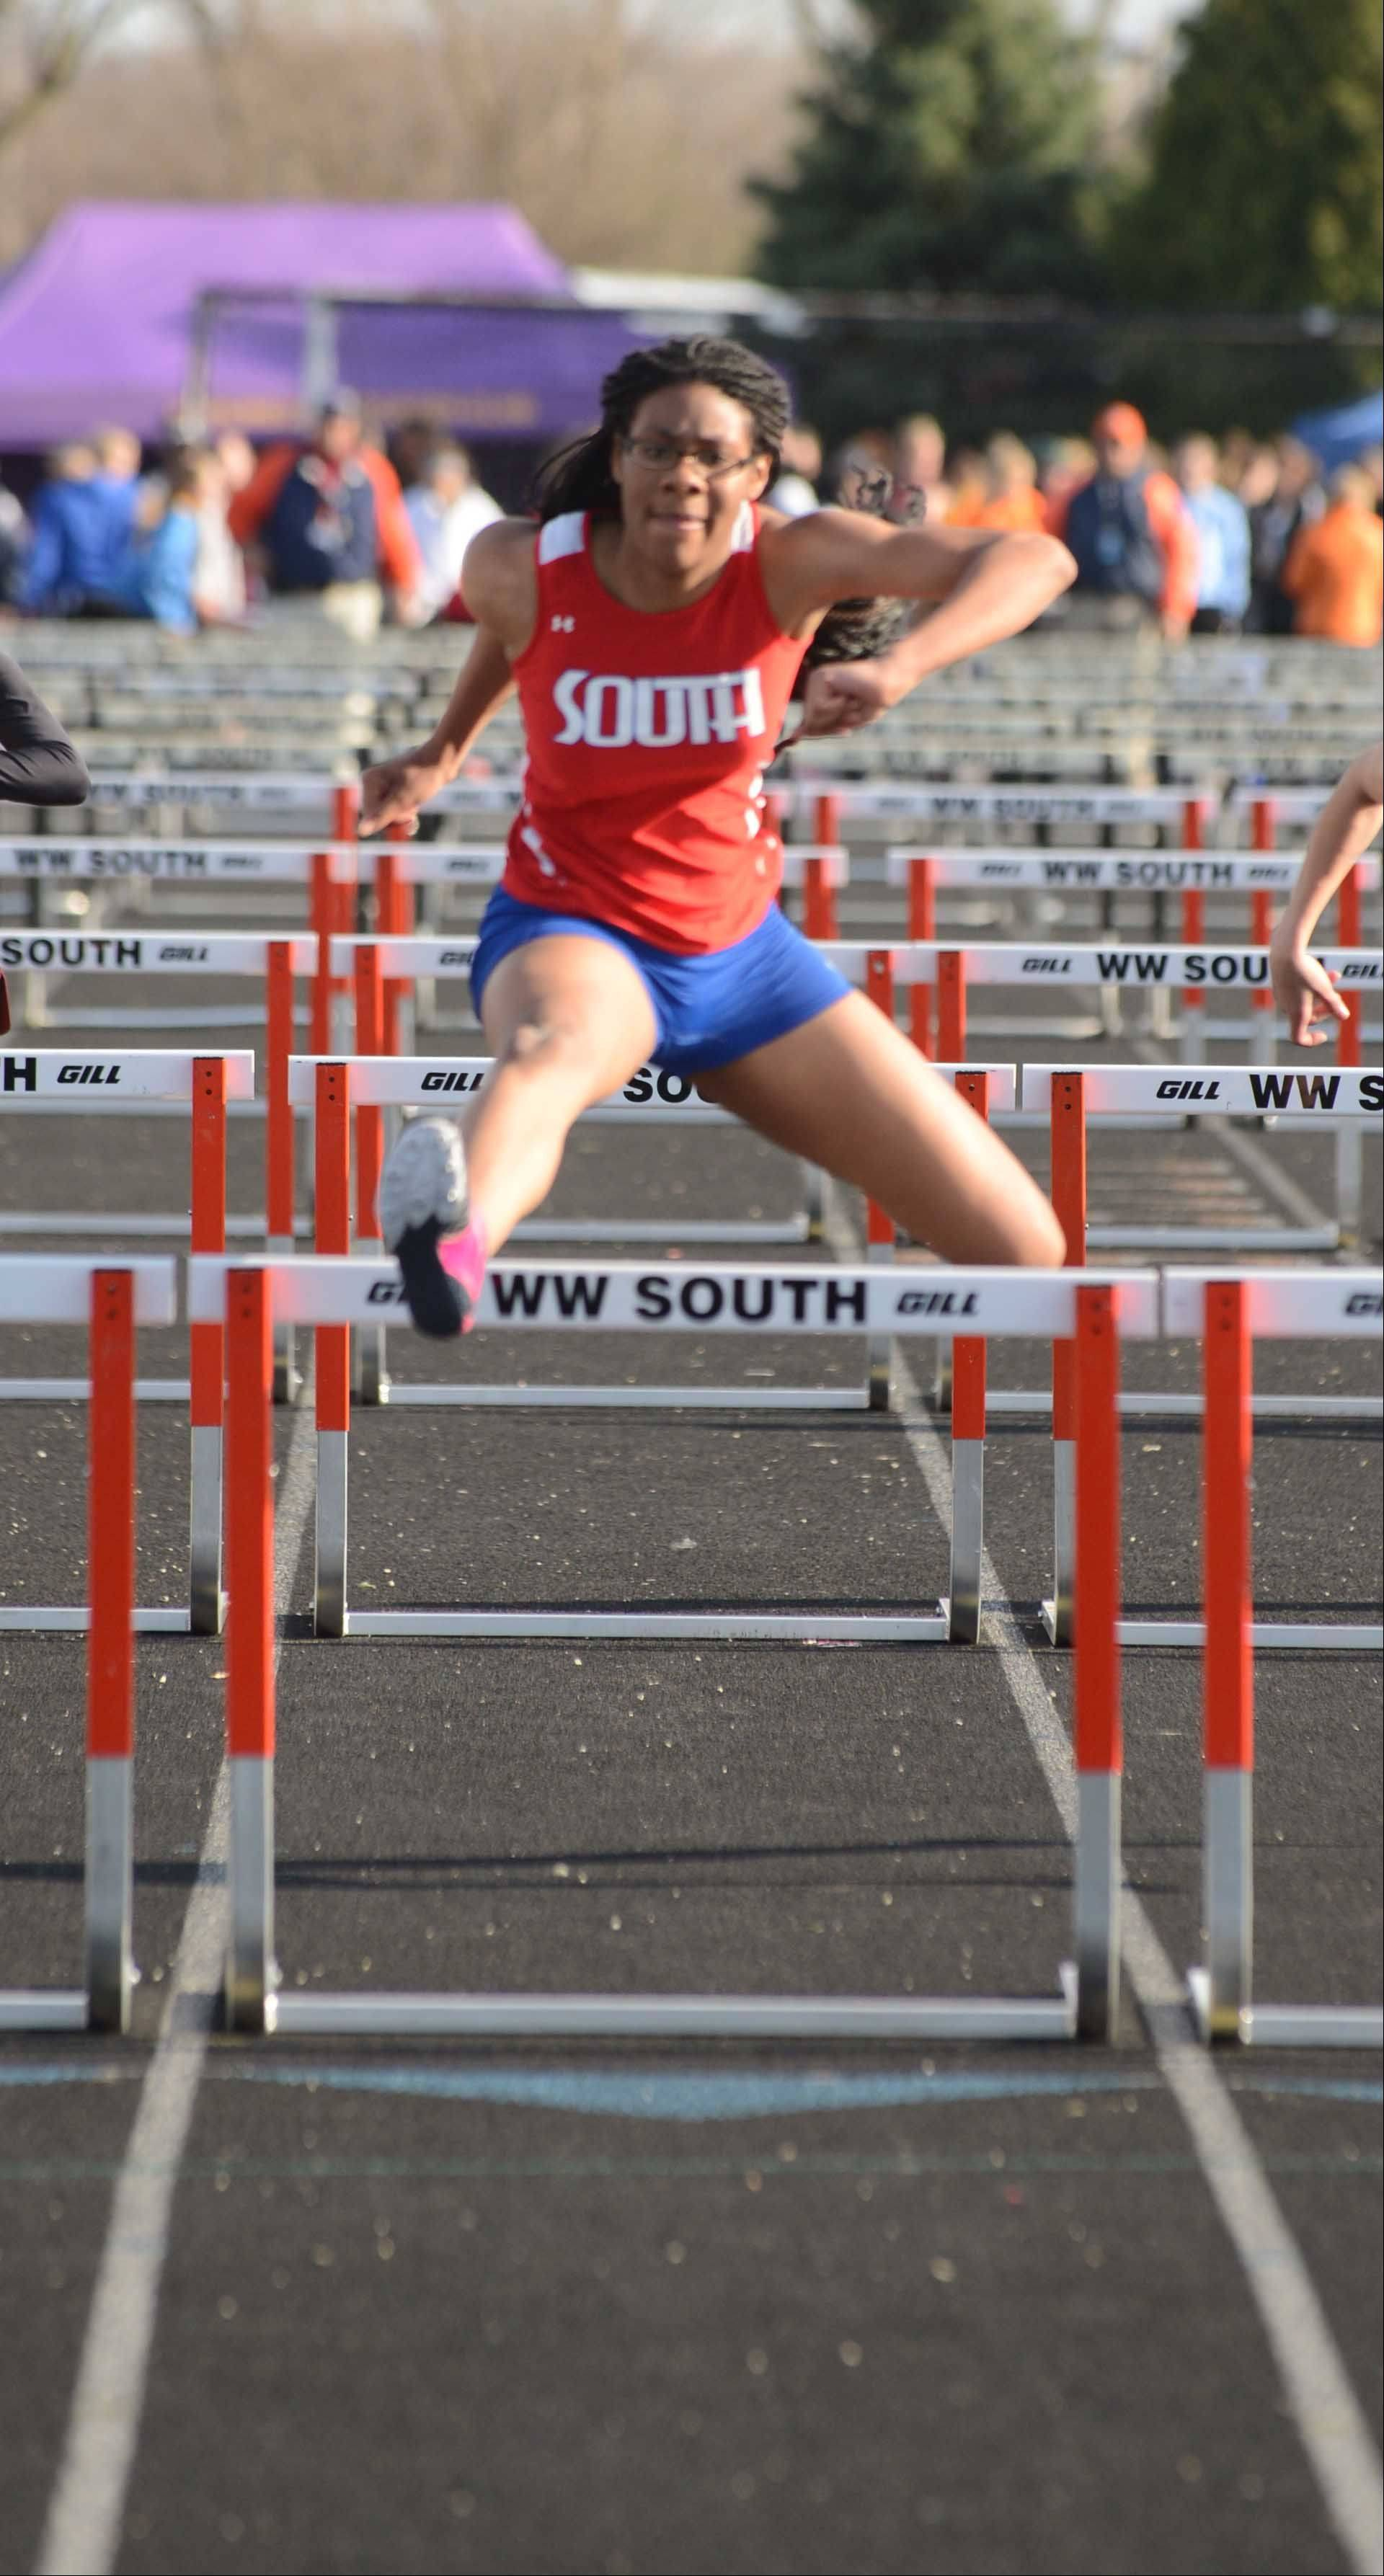 Katelyn Hill of Glenbard south runs the 100meter hurdles during the Wheaton Warrenville South girls track meet Friday.